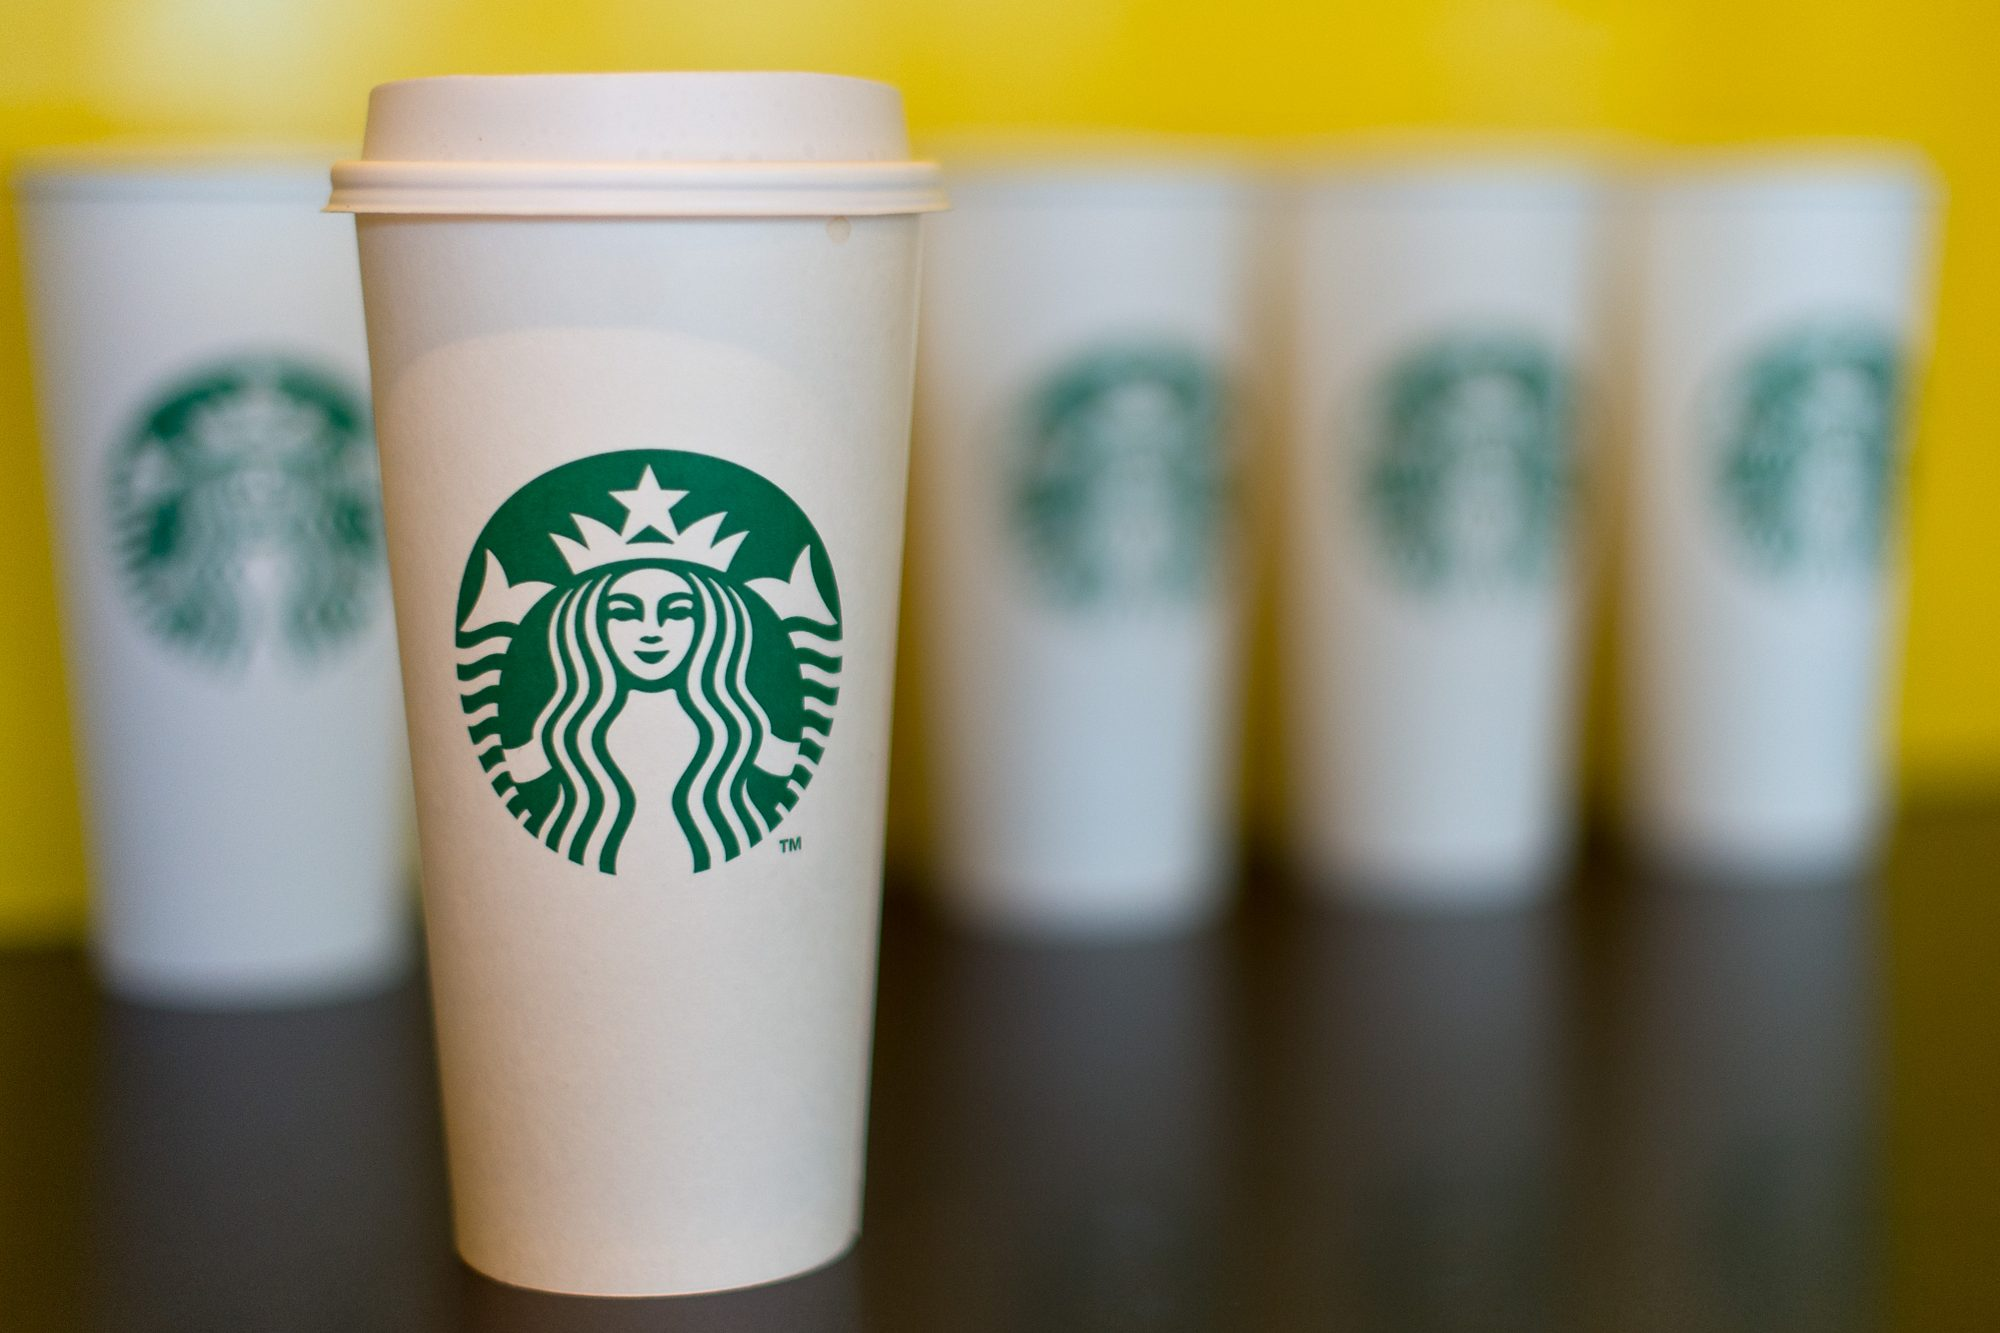 microeconomics and starbucks Forget about super-sizing into the trenta a few years from now: starbucks is warning of a threat to world coffee supply because of climate change in a telephone interview with the guardian, jim hanna, the company's sustainability director, said its farmers were already seeing the effects of a.